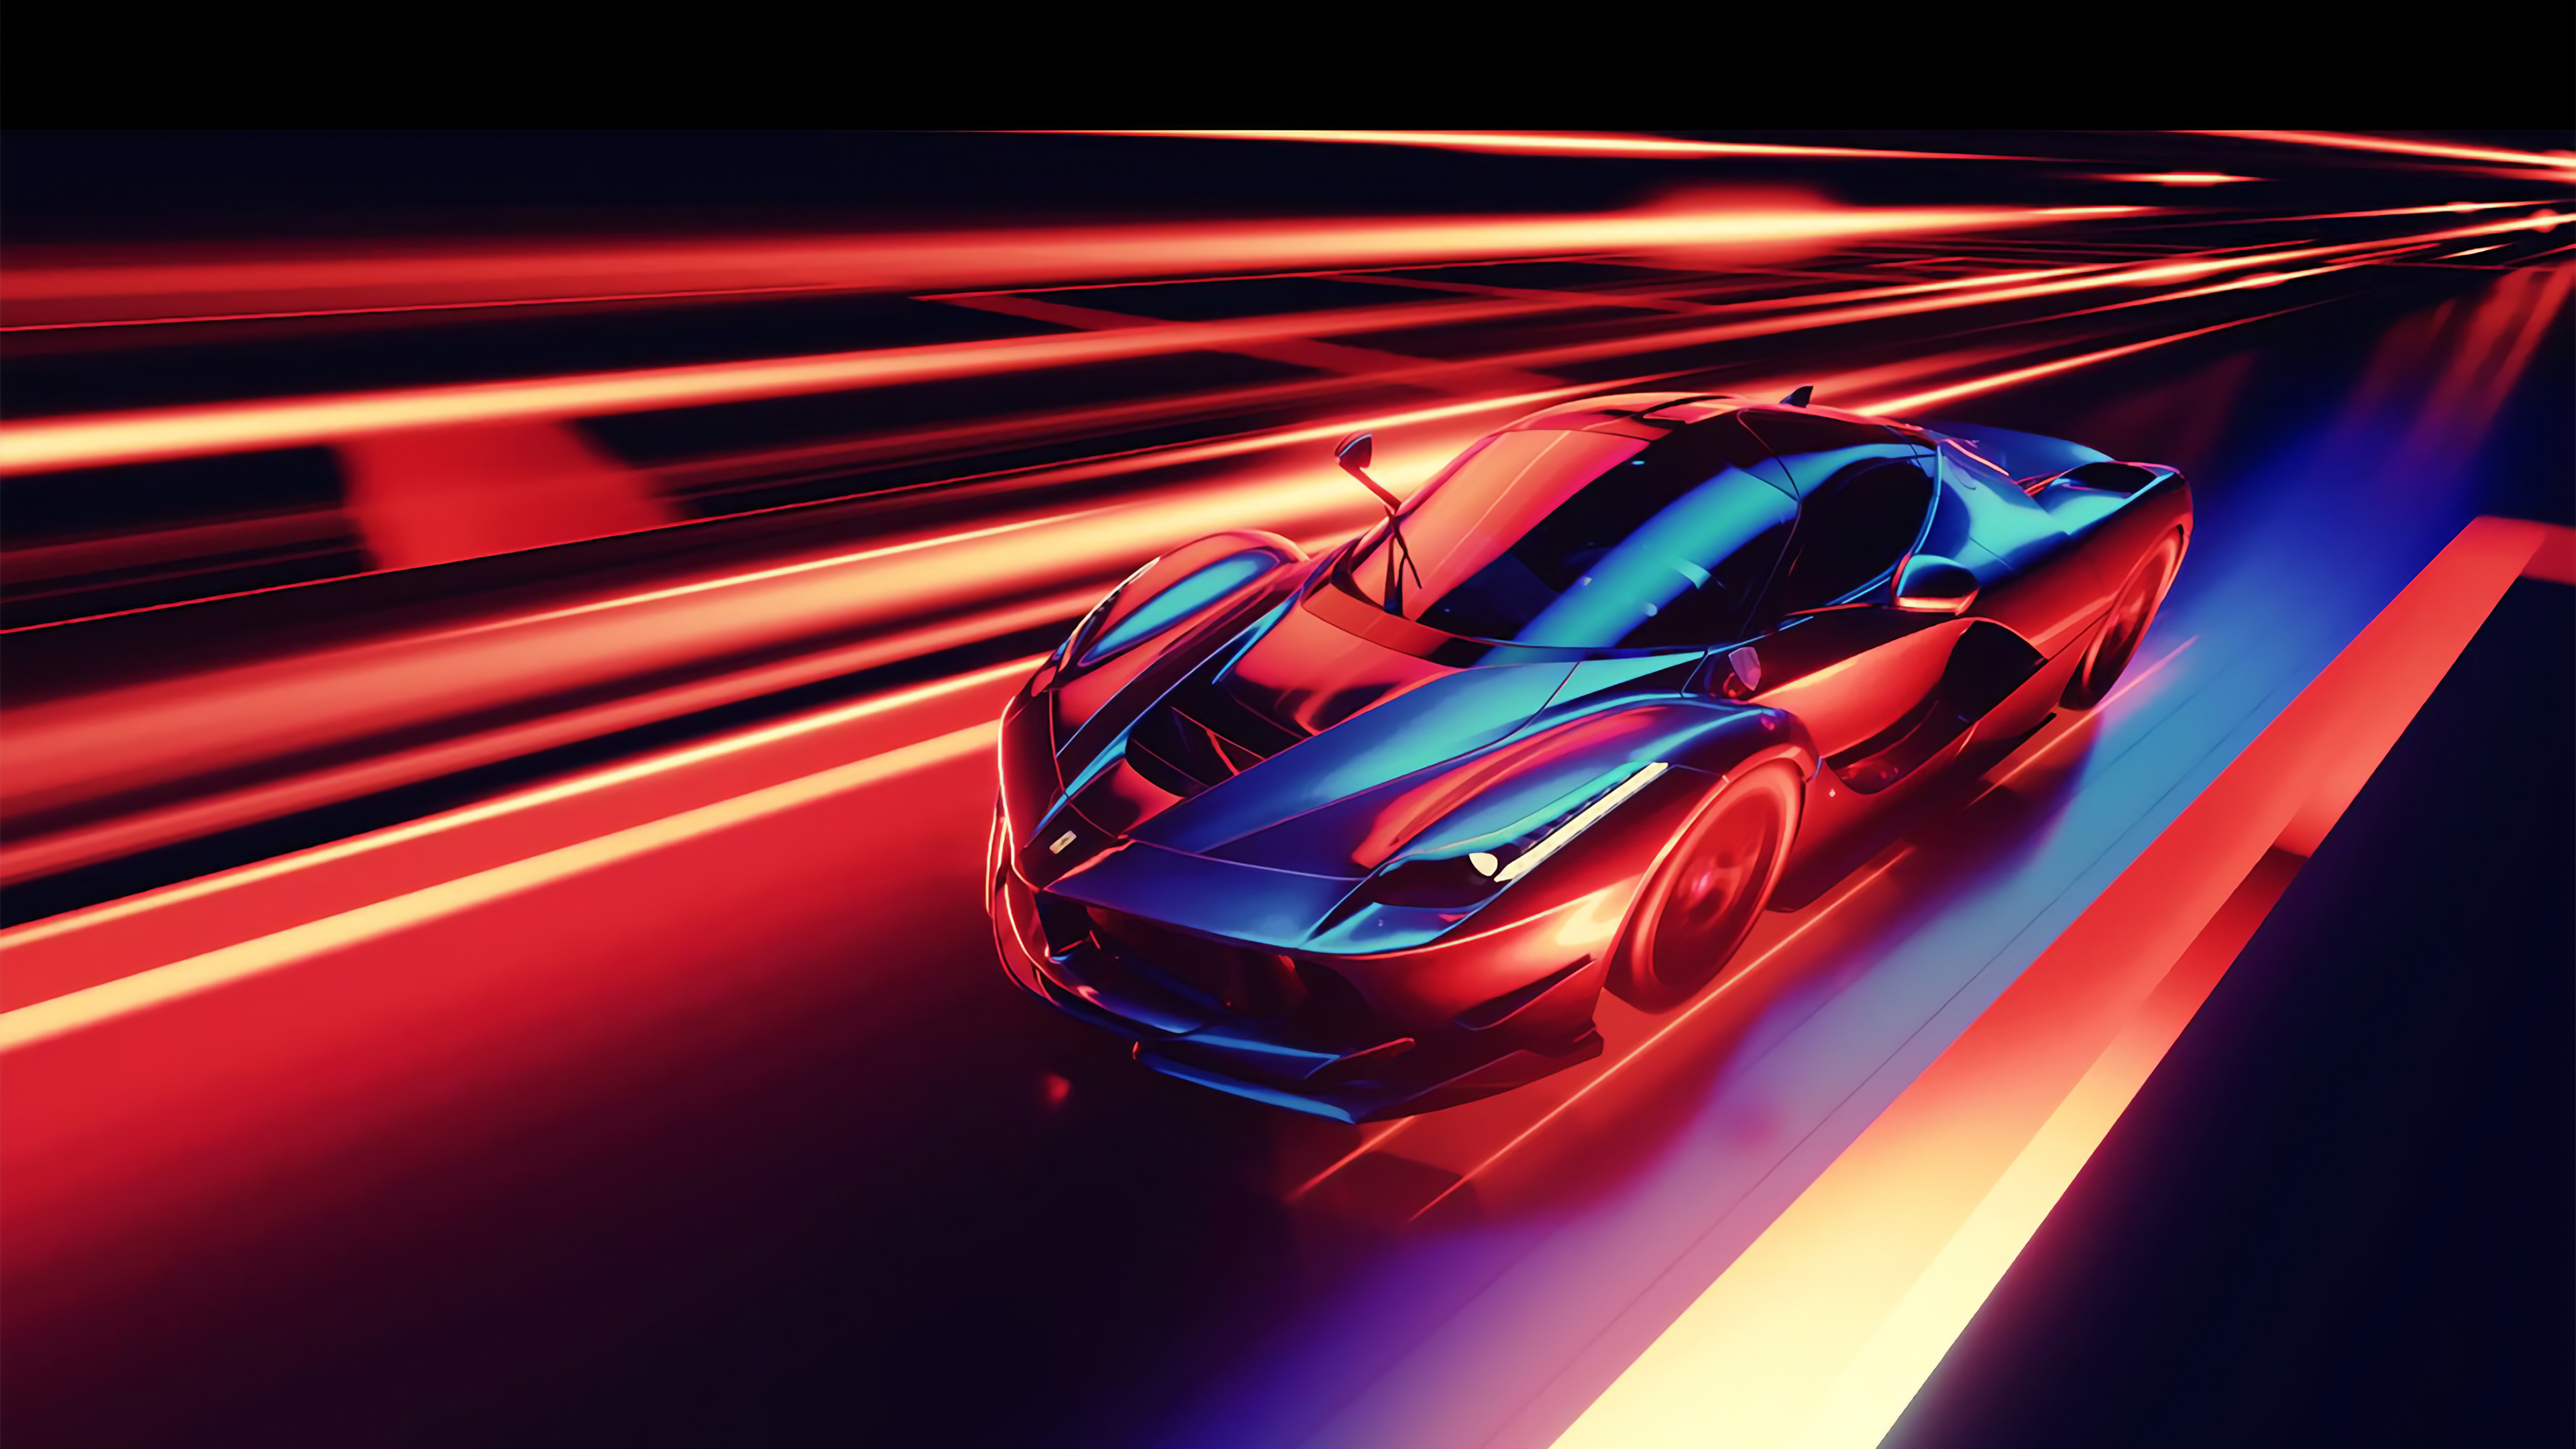 1920x1080 Ferrari Neon 1080p Laptop Full Hd Wallpaper Hd Artist 4k Wallpapers Images Photos And Background